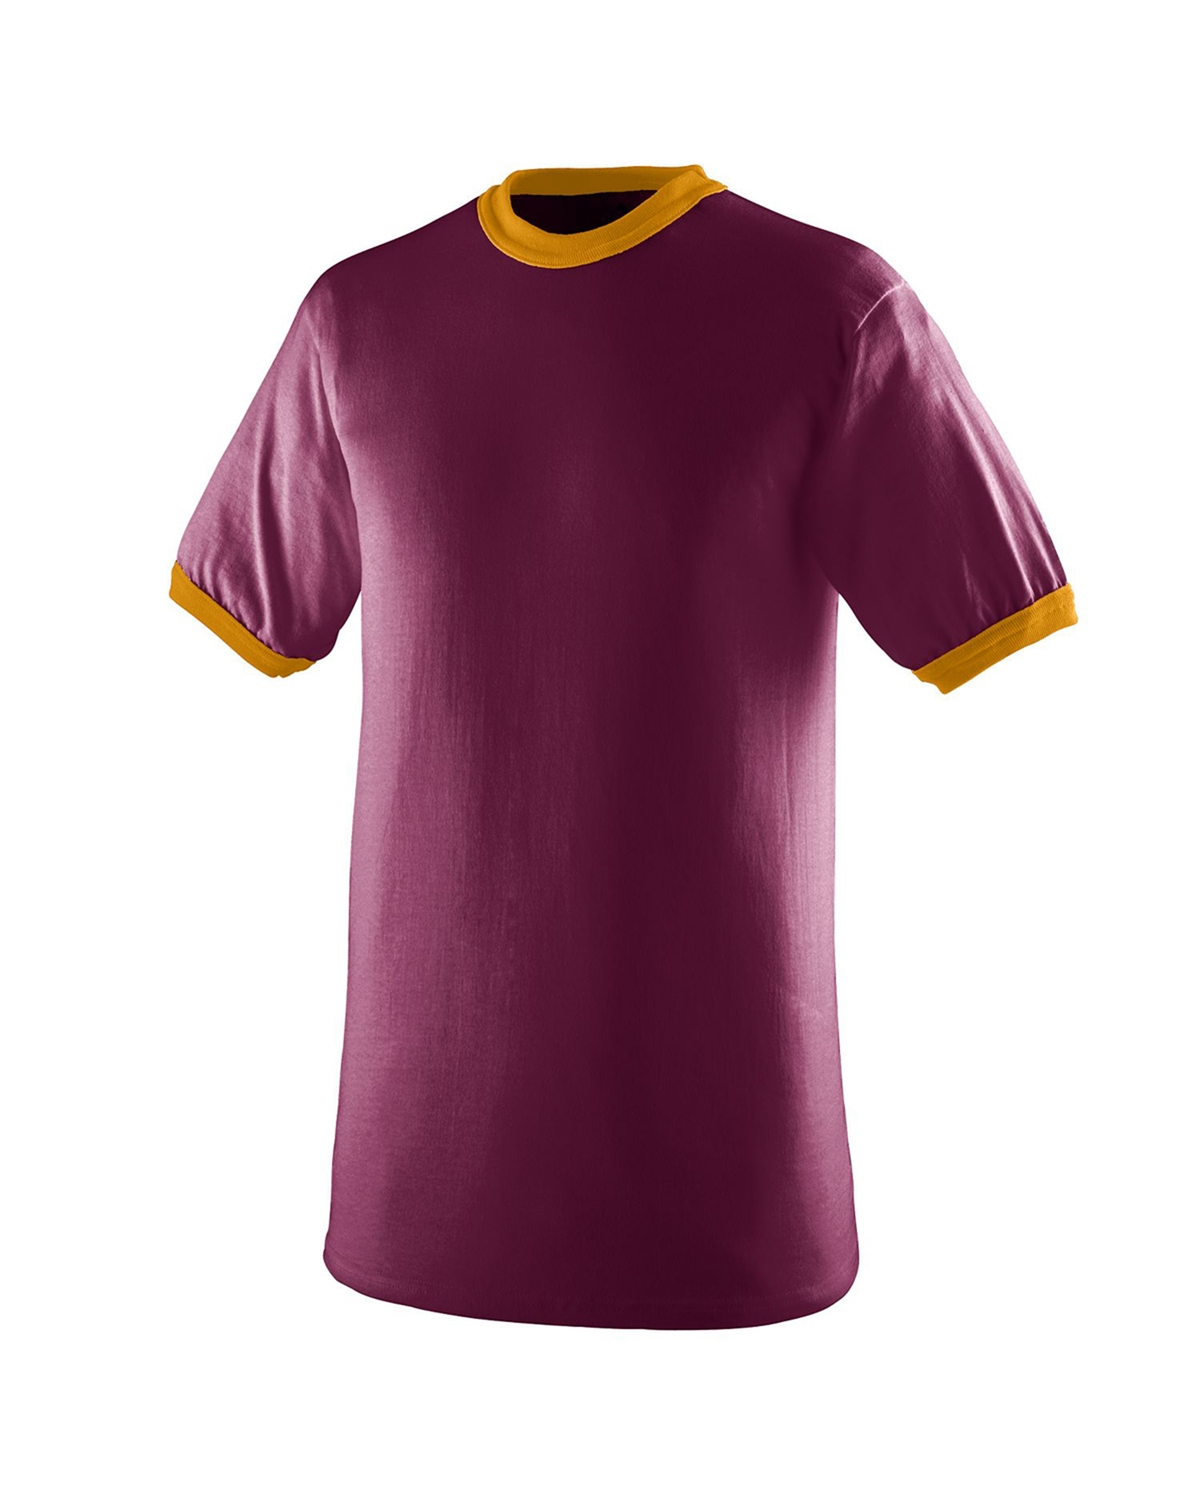 click to view Maroon/Gold